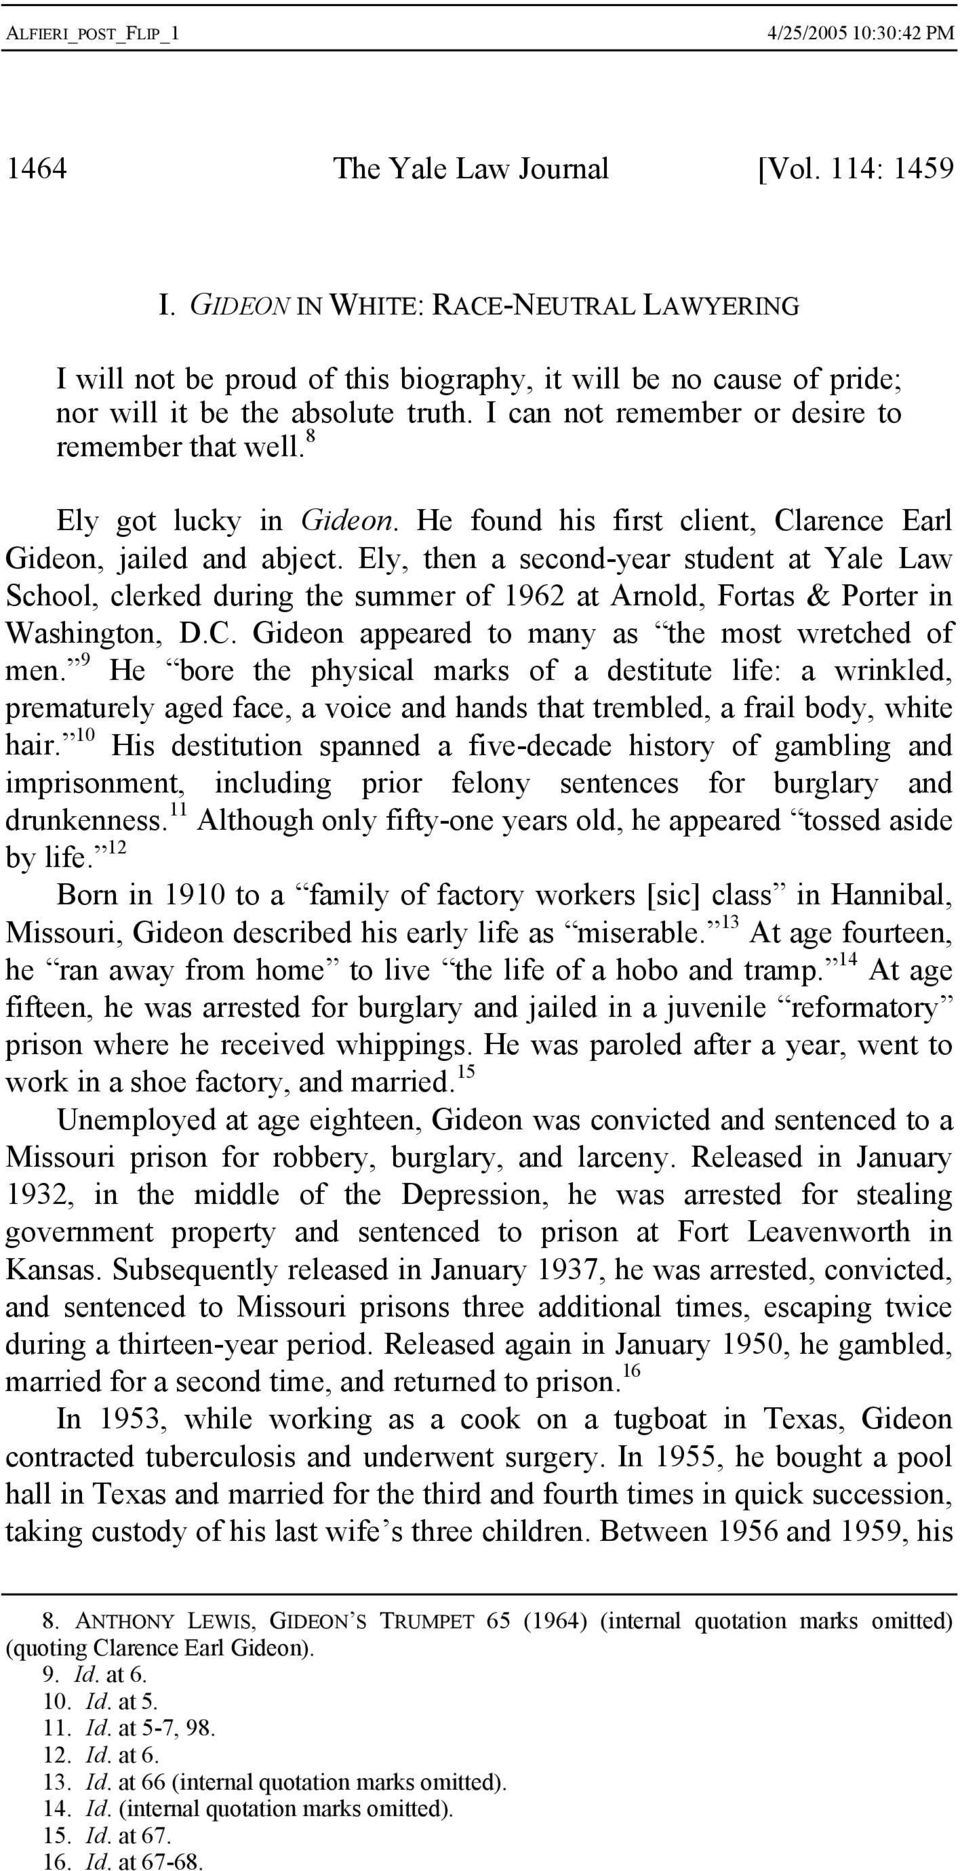 Ely, then a second-year student at Yale Law School, clerked during the summer of 1962 at Arnold, Fortas & Porter in Washington, D.C. Gideon appeared to many as the most wretched of men.